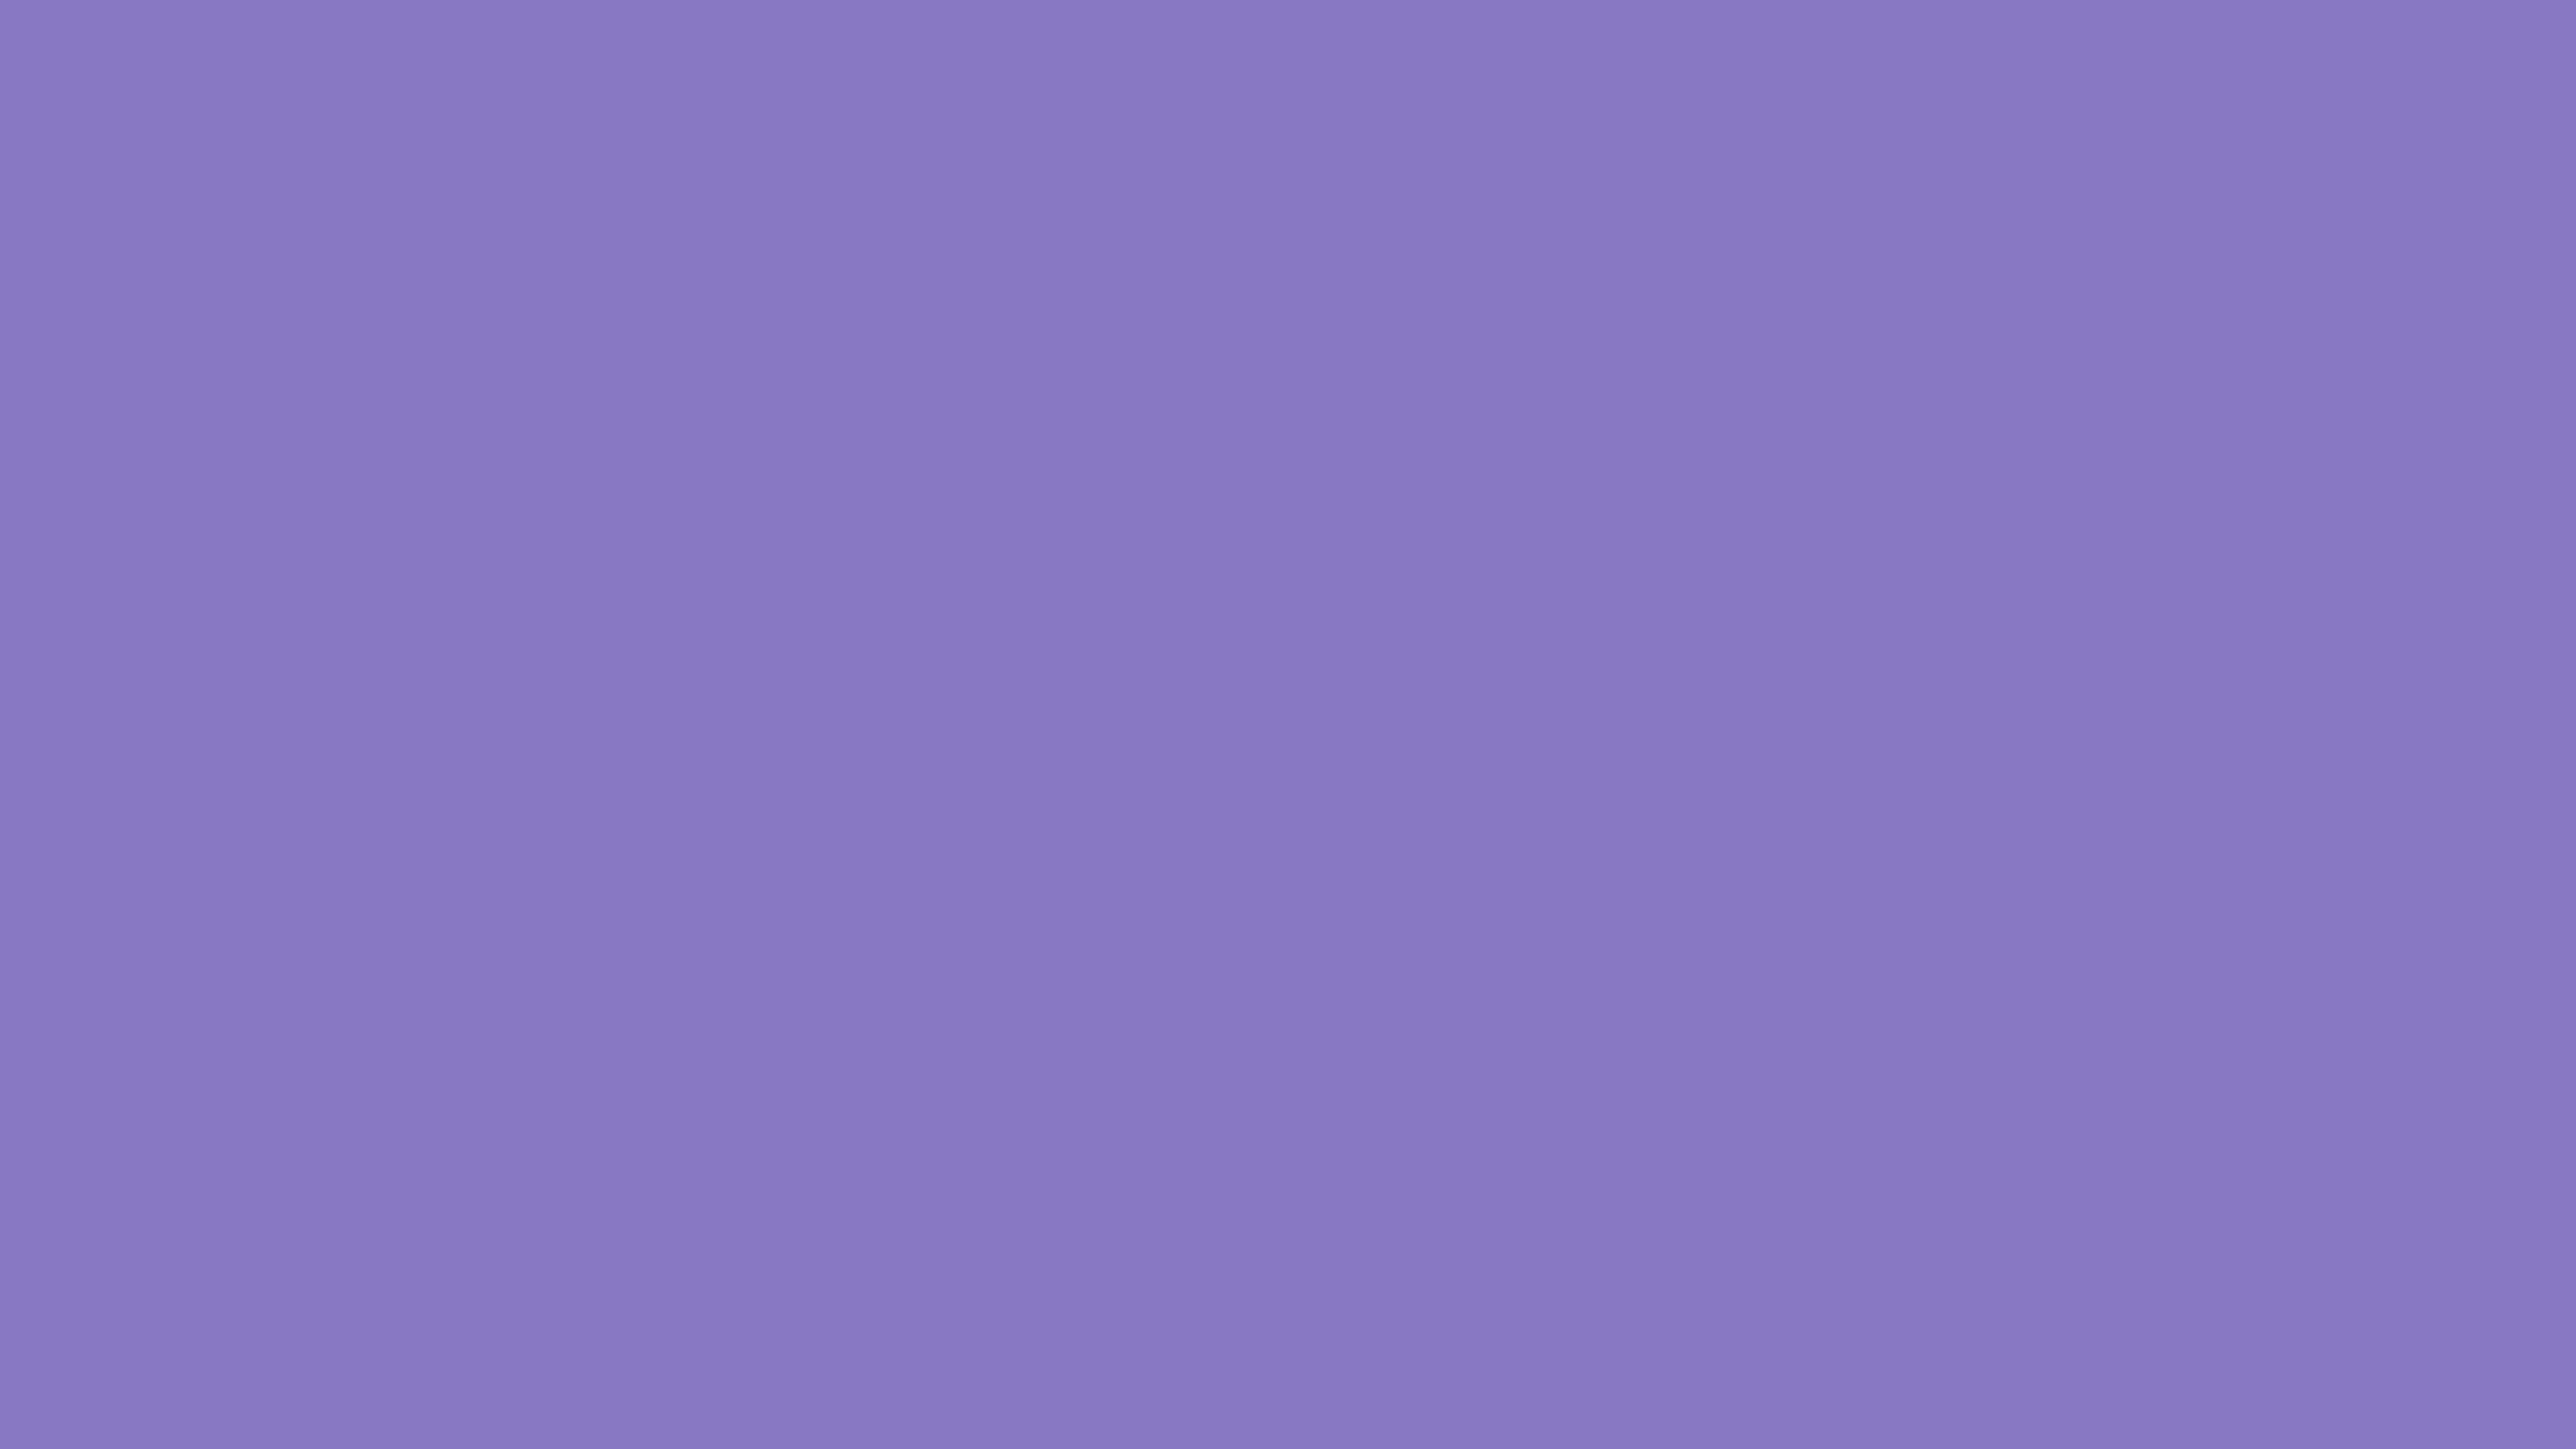 5120x2880 Ube Solid Color Background